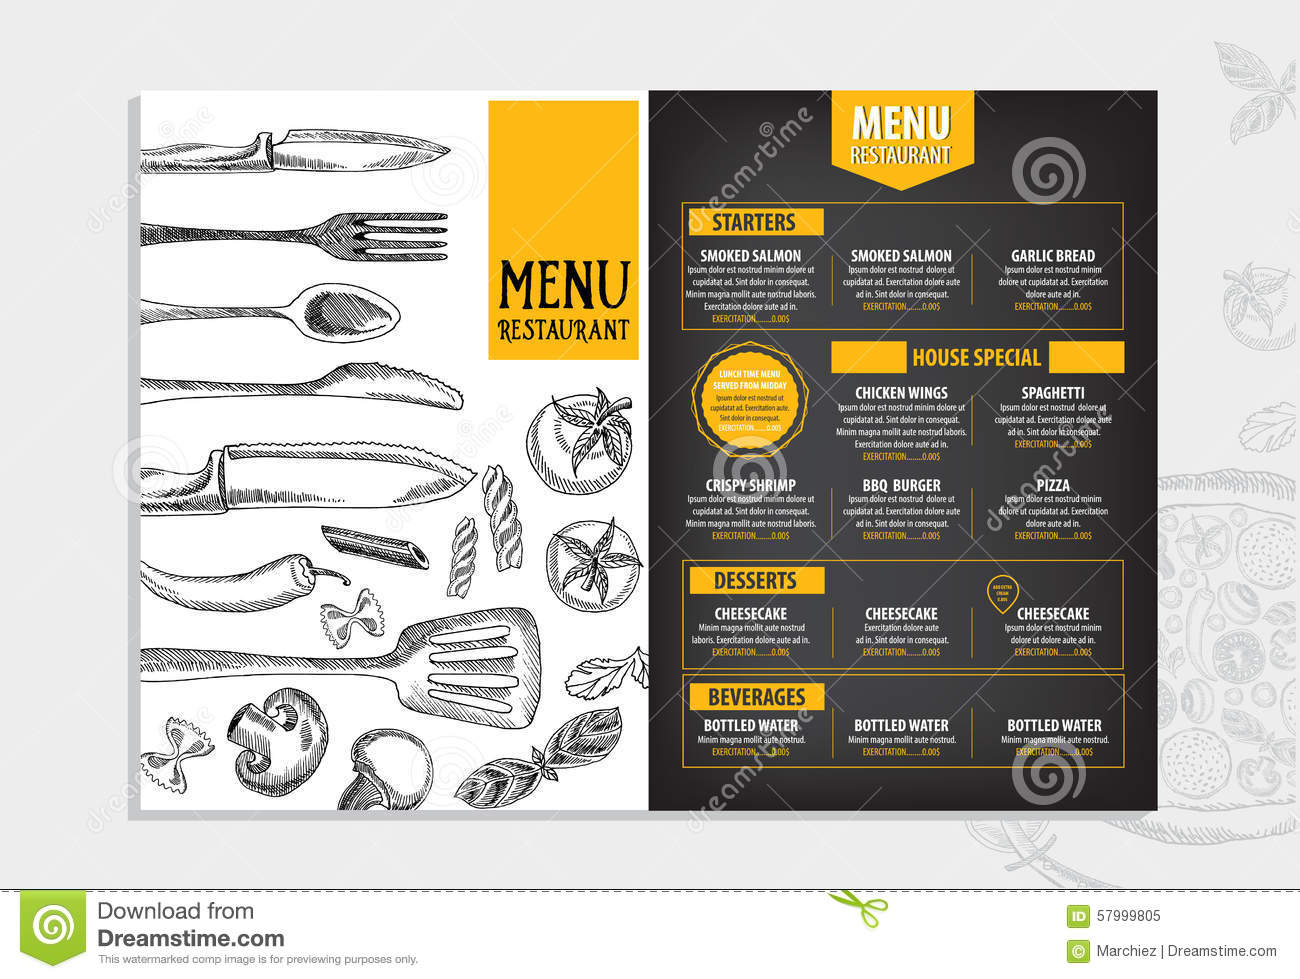 Restaurant cafe menu template design food flyer stock for Cafe menu design template free download